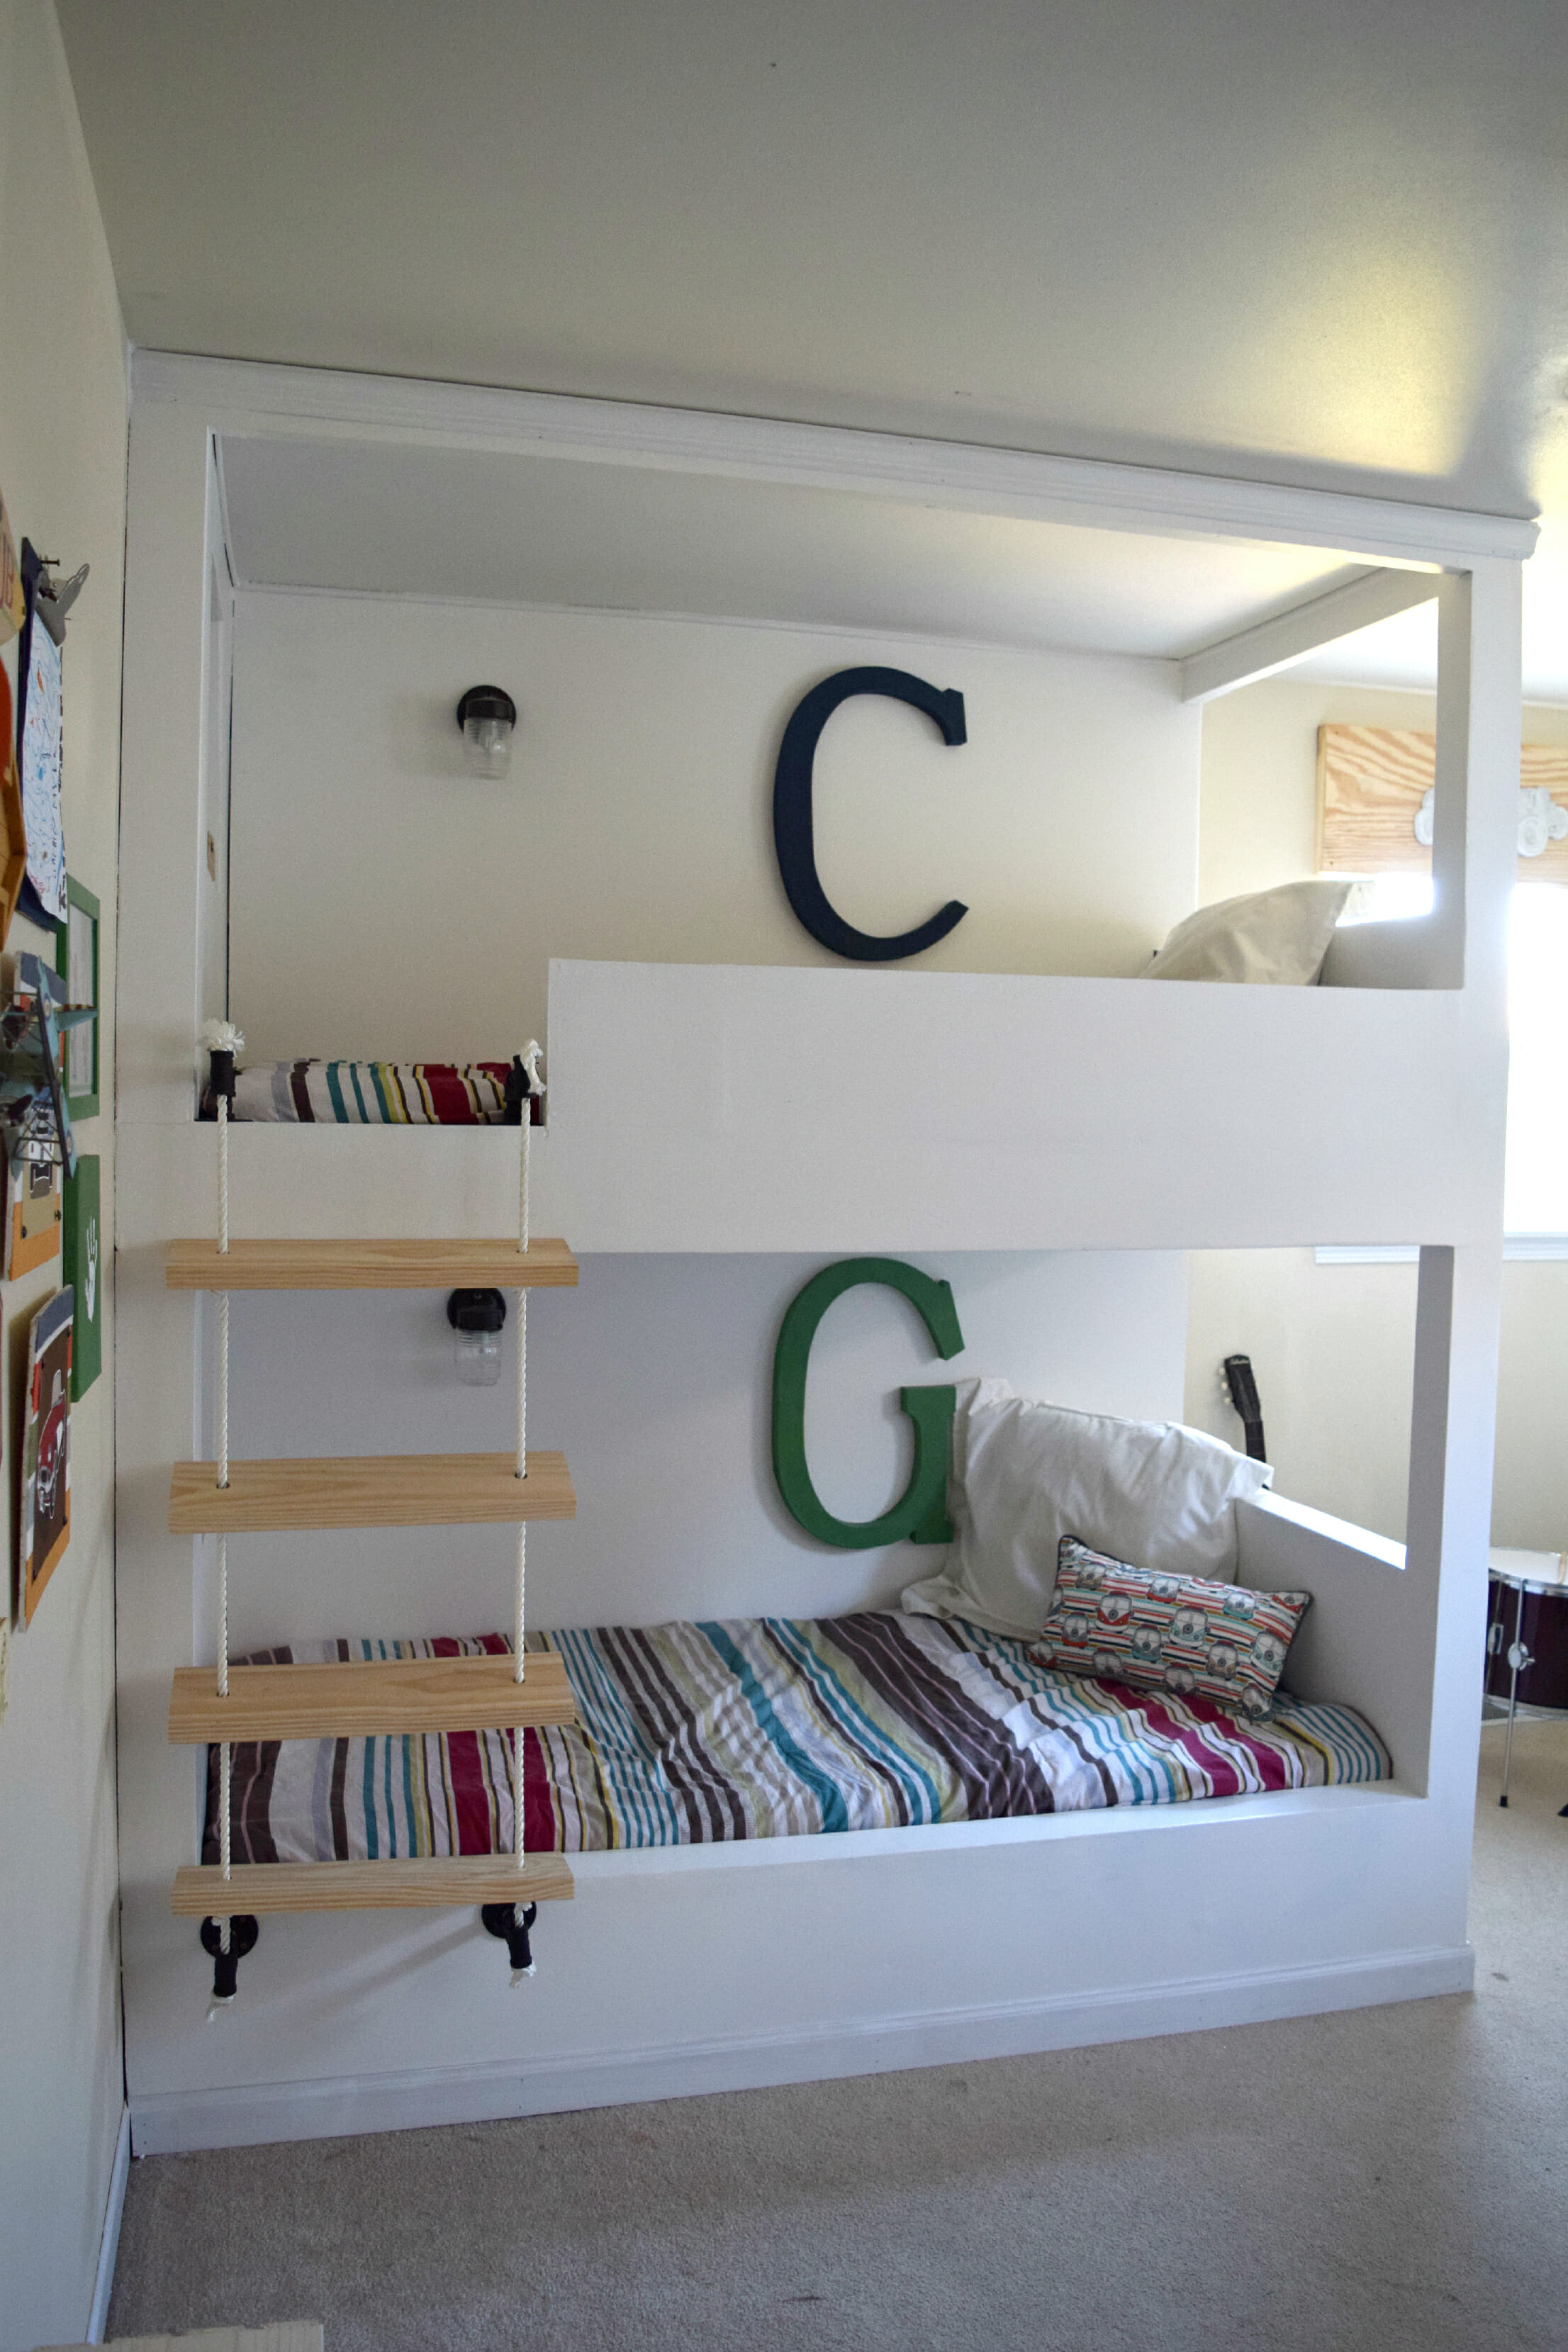 Children's bedroom tour and ideas - Room By Room series ...